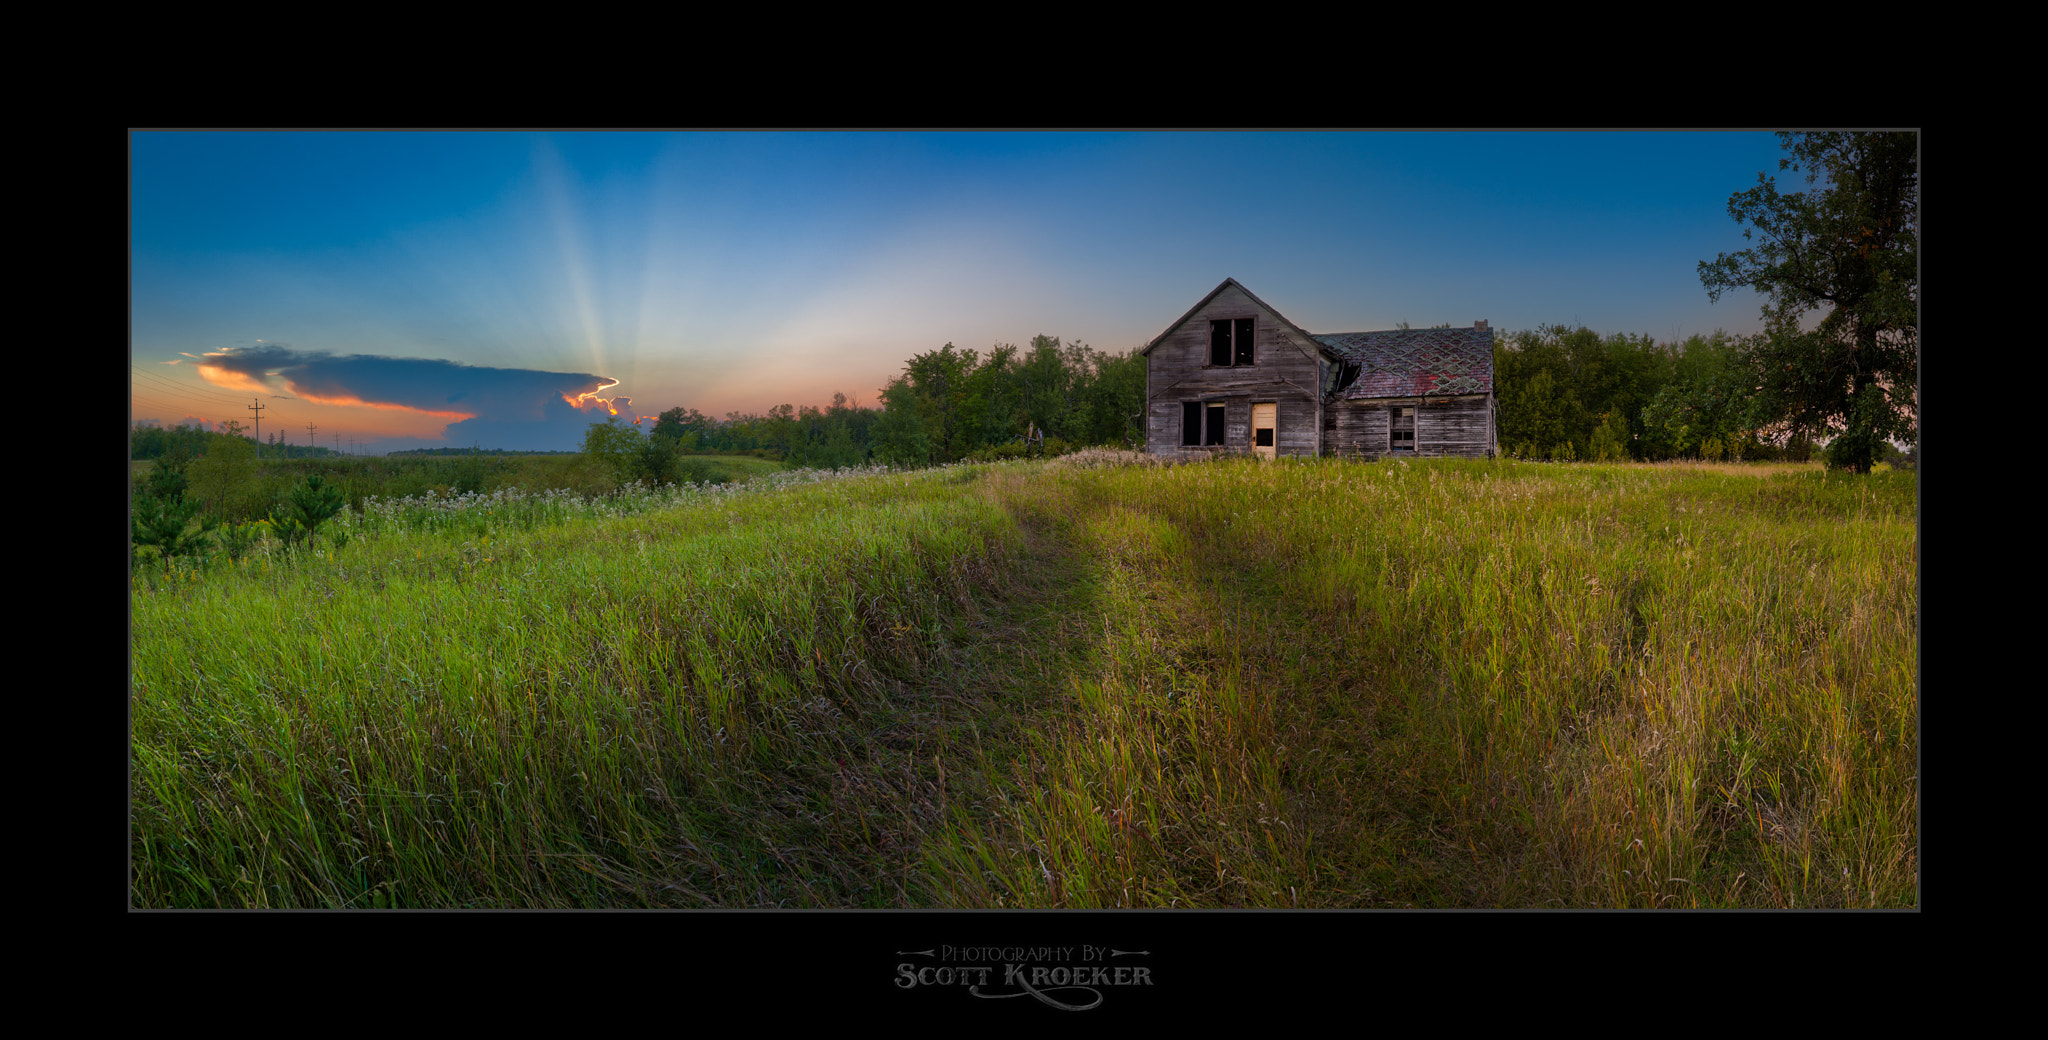 Photograph Old House on the Hill by Scott Kroeker on 500px